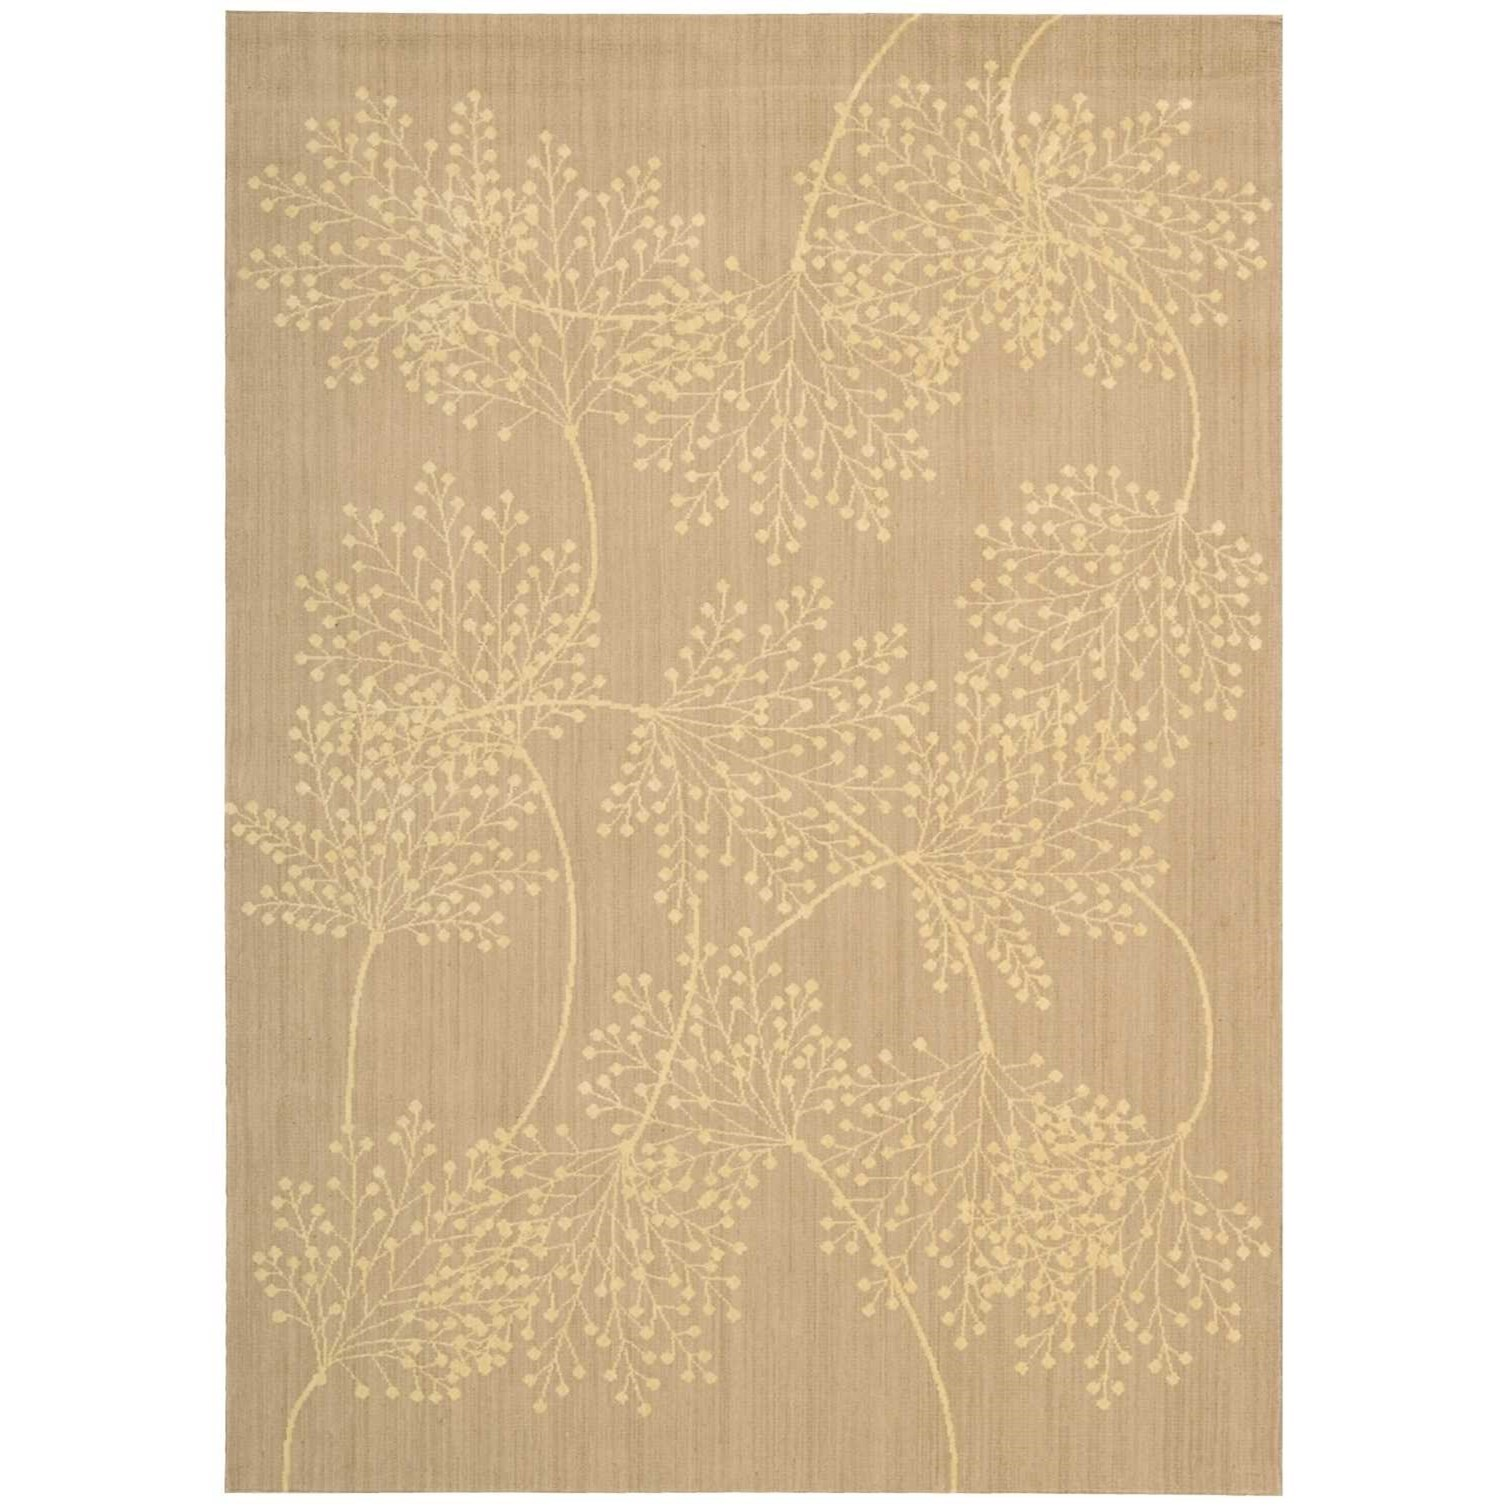 "Capri 5'3"" x 7'5"" Sand Rectangle Rug by Nourison at Sprintz Furniture"